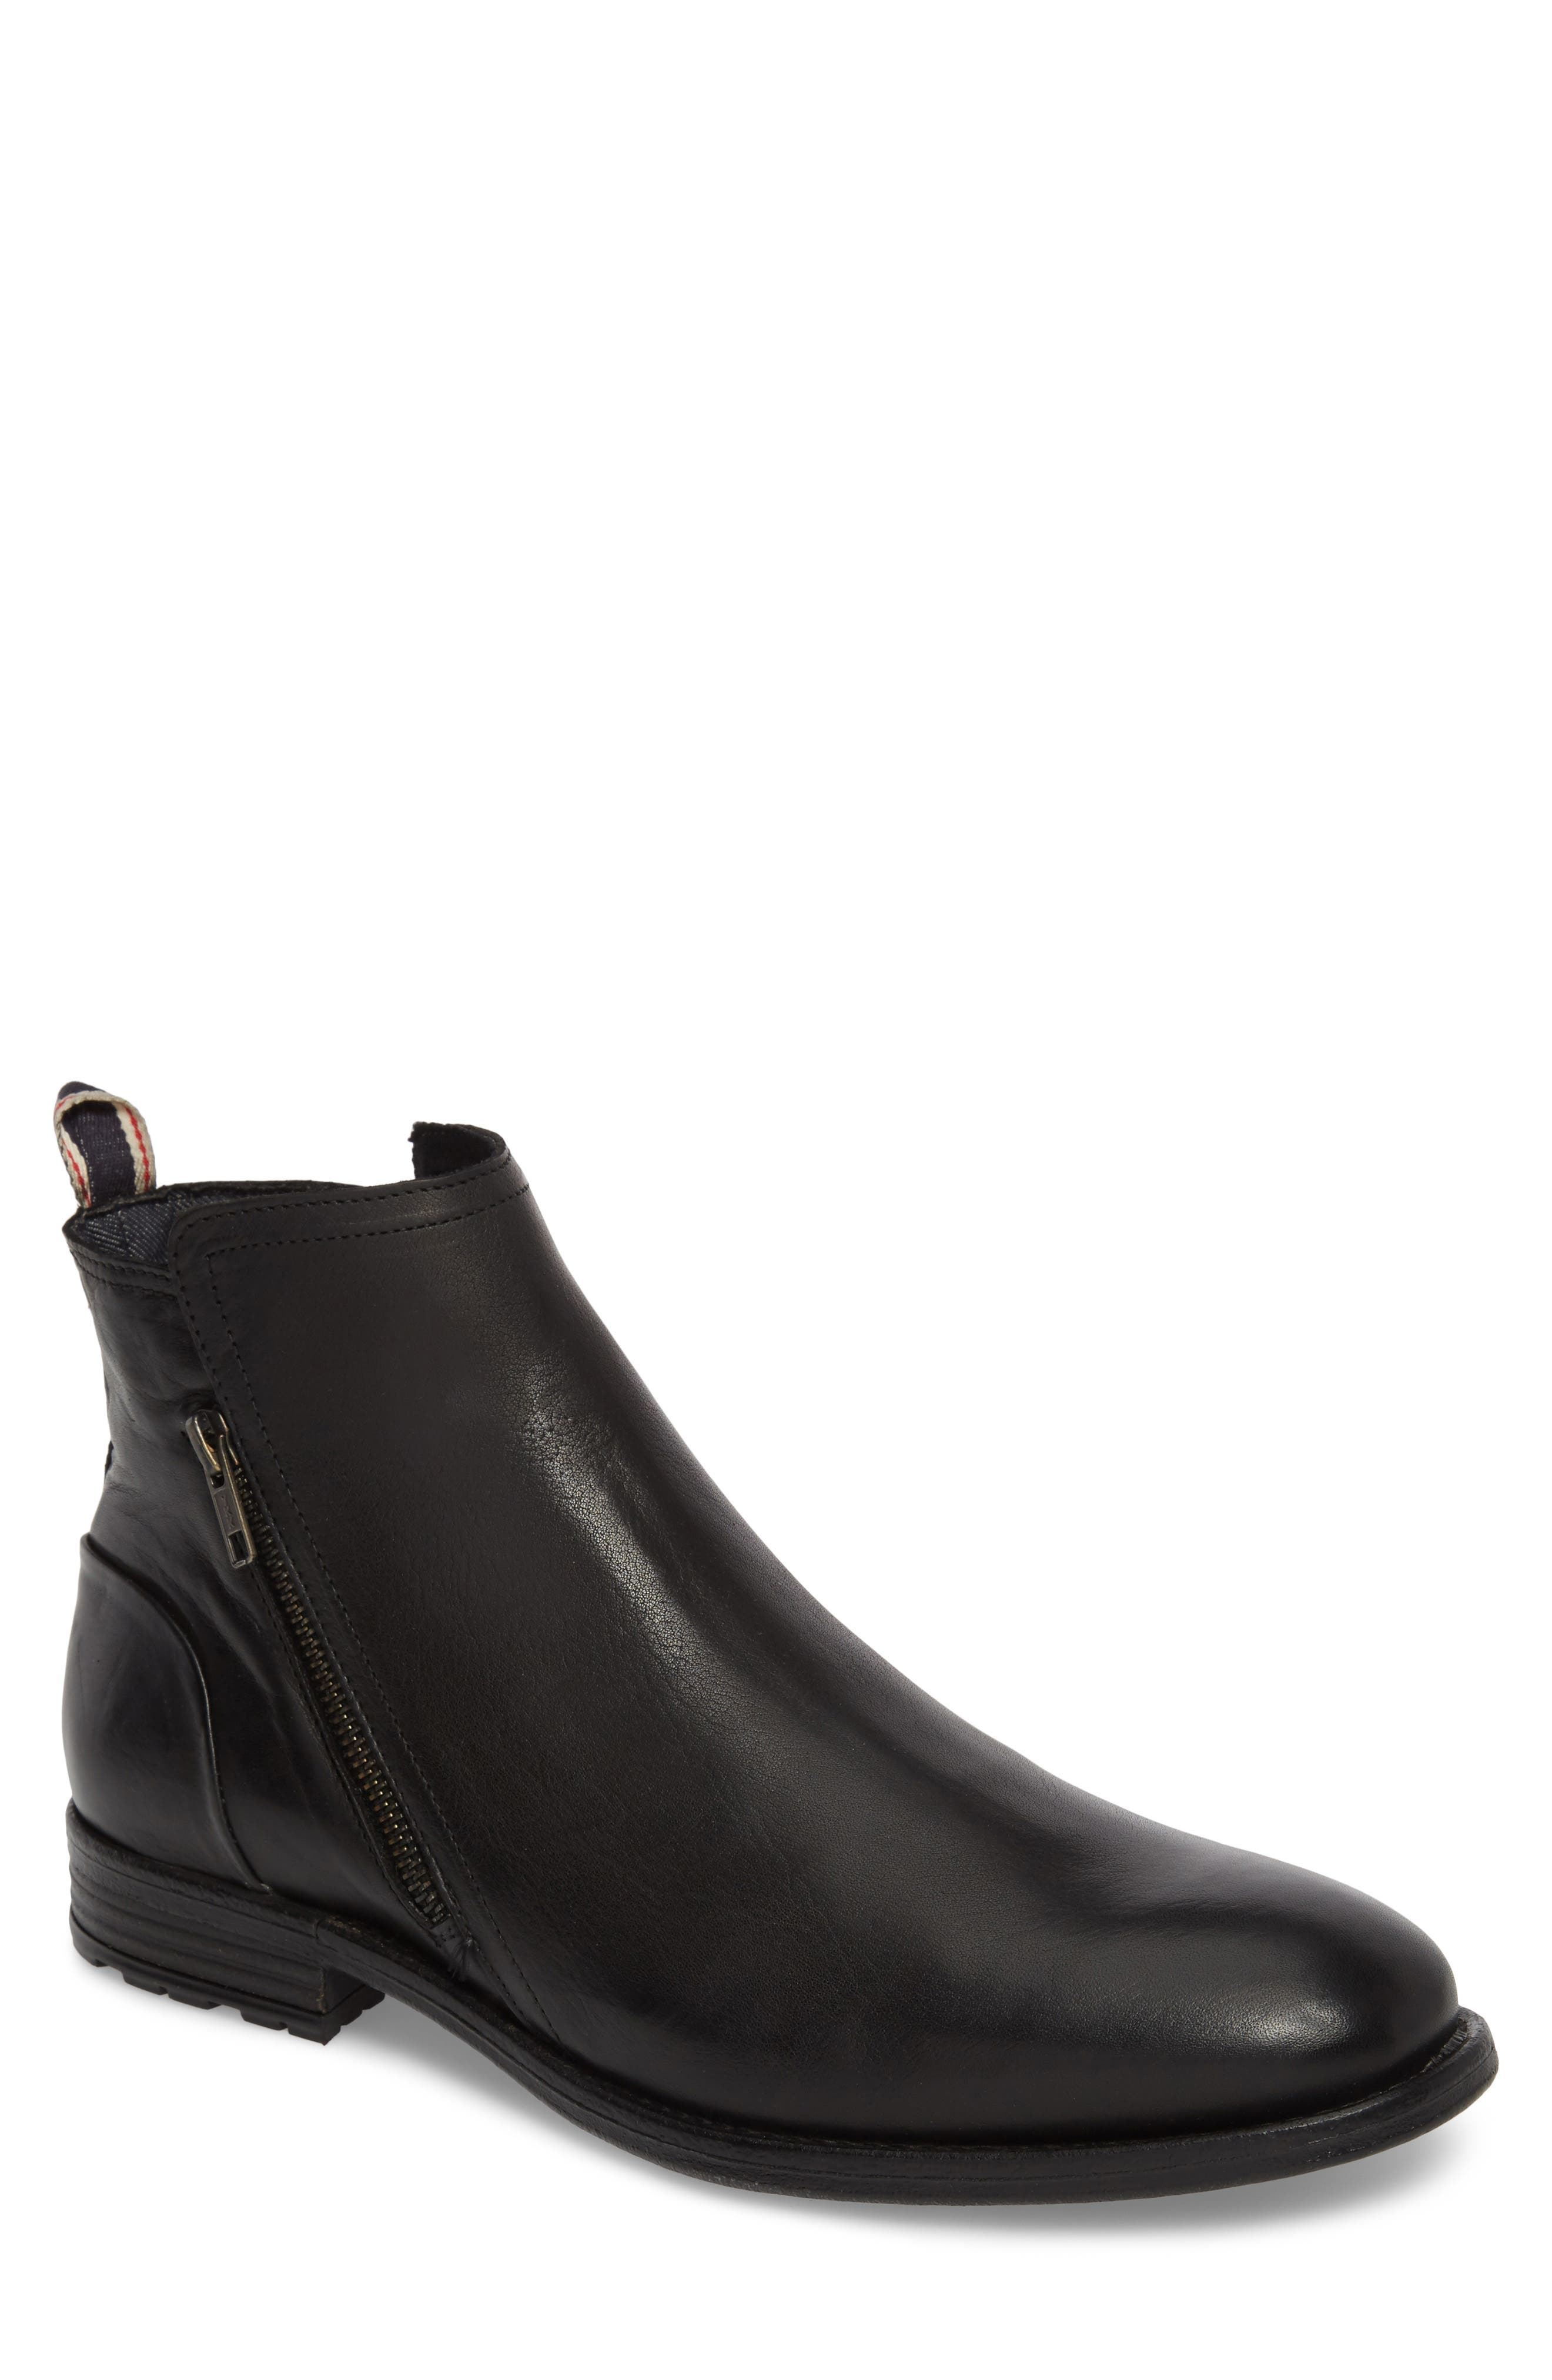 Gerone Zip Boot,                             Main thumbnail 1, color,                             Black Leather Fabric